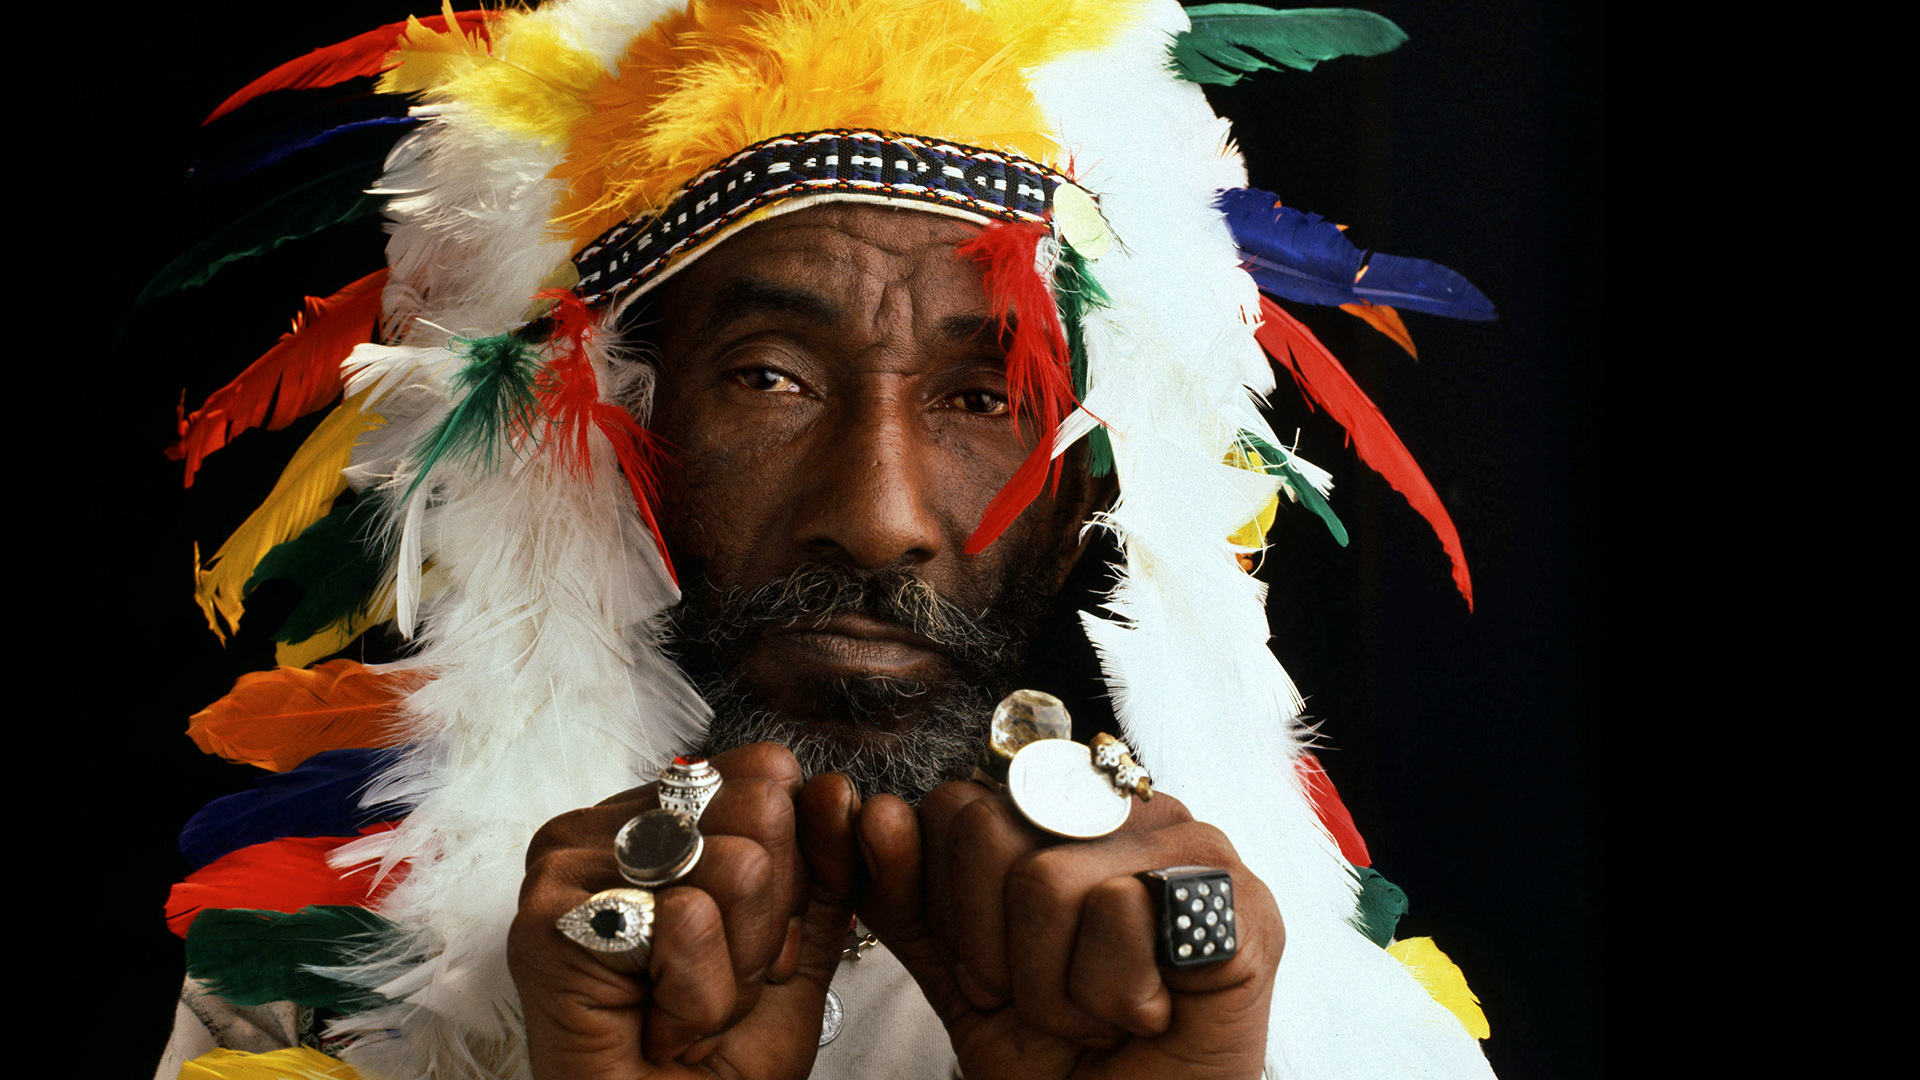 An Introduction To Lee Scratch Perry In 10 Records